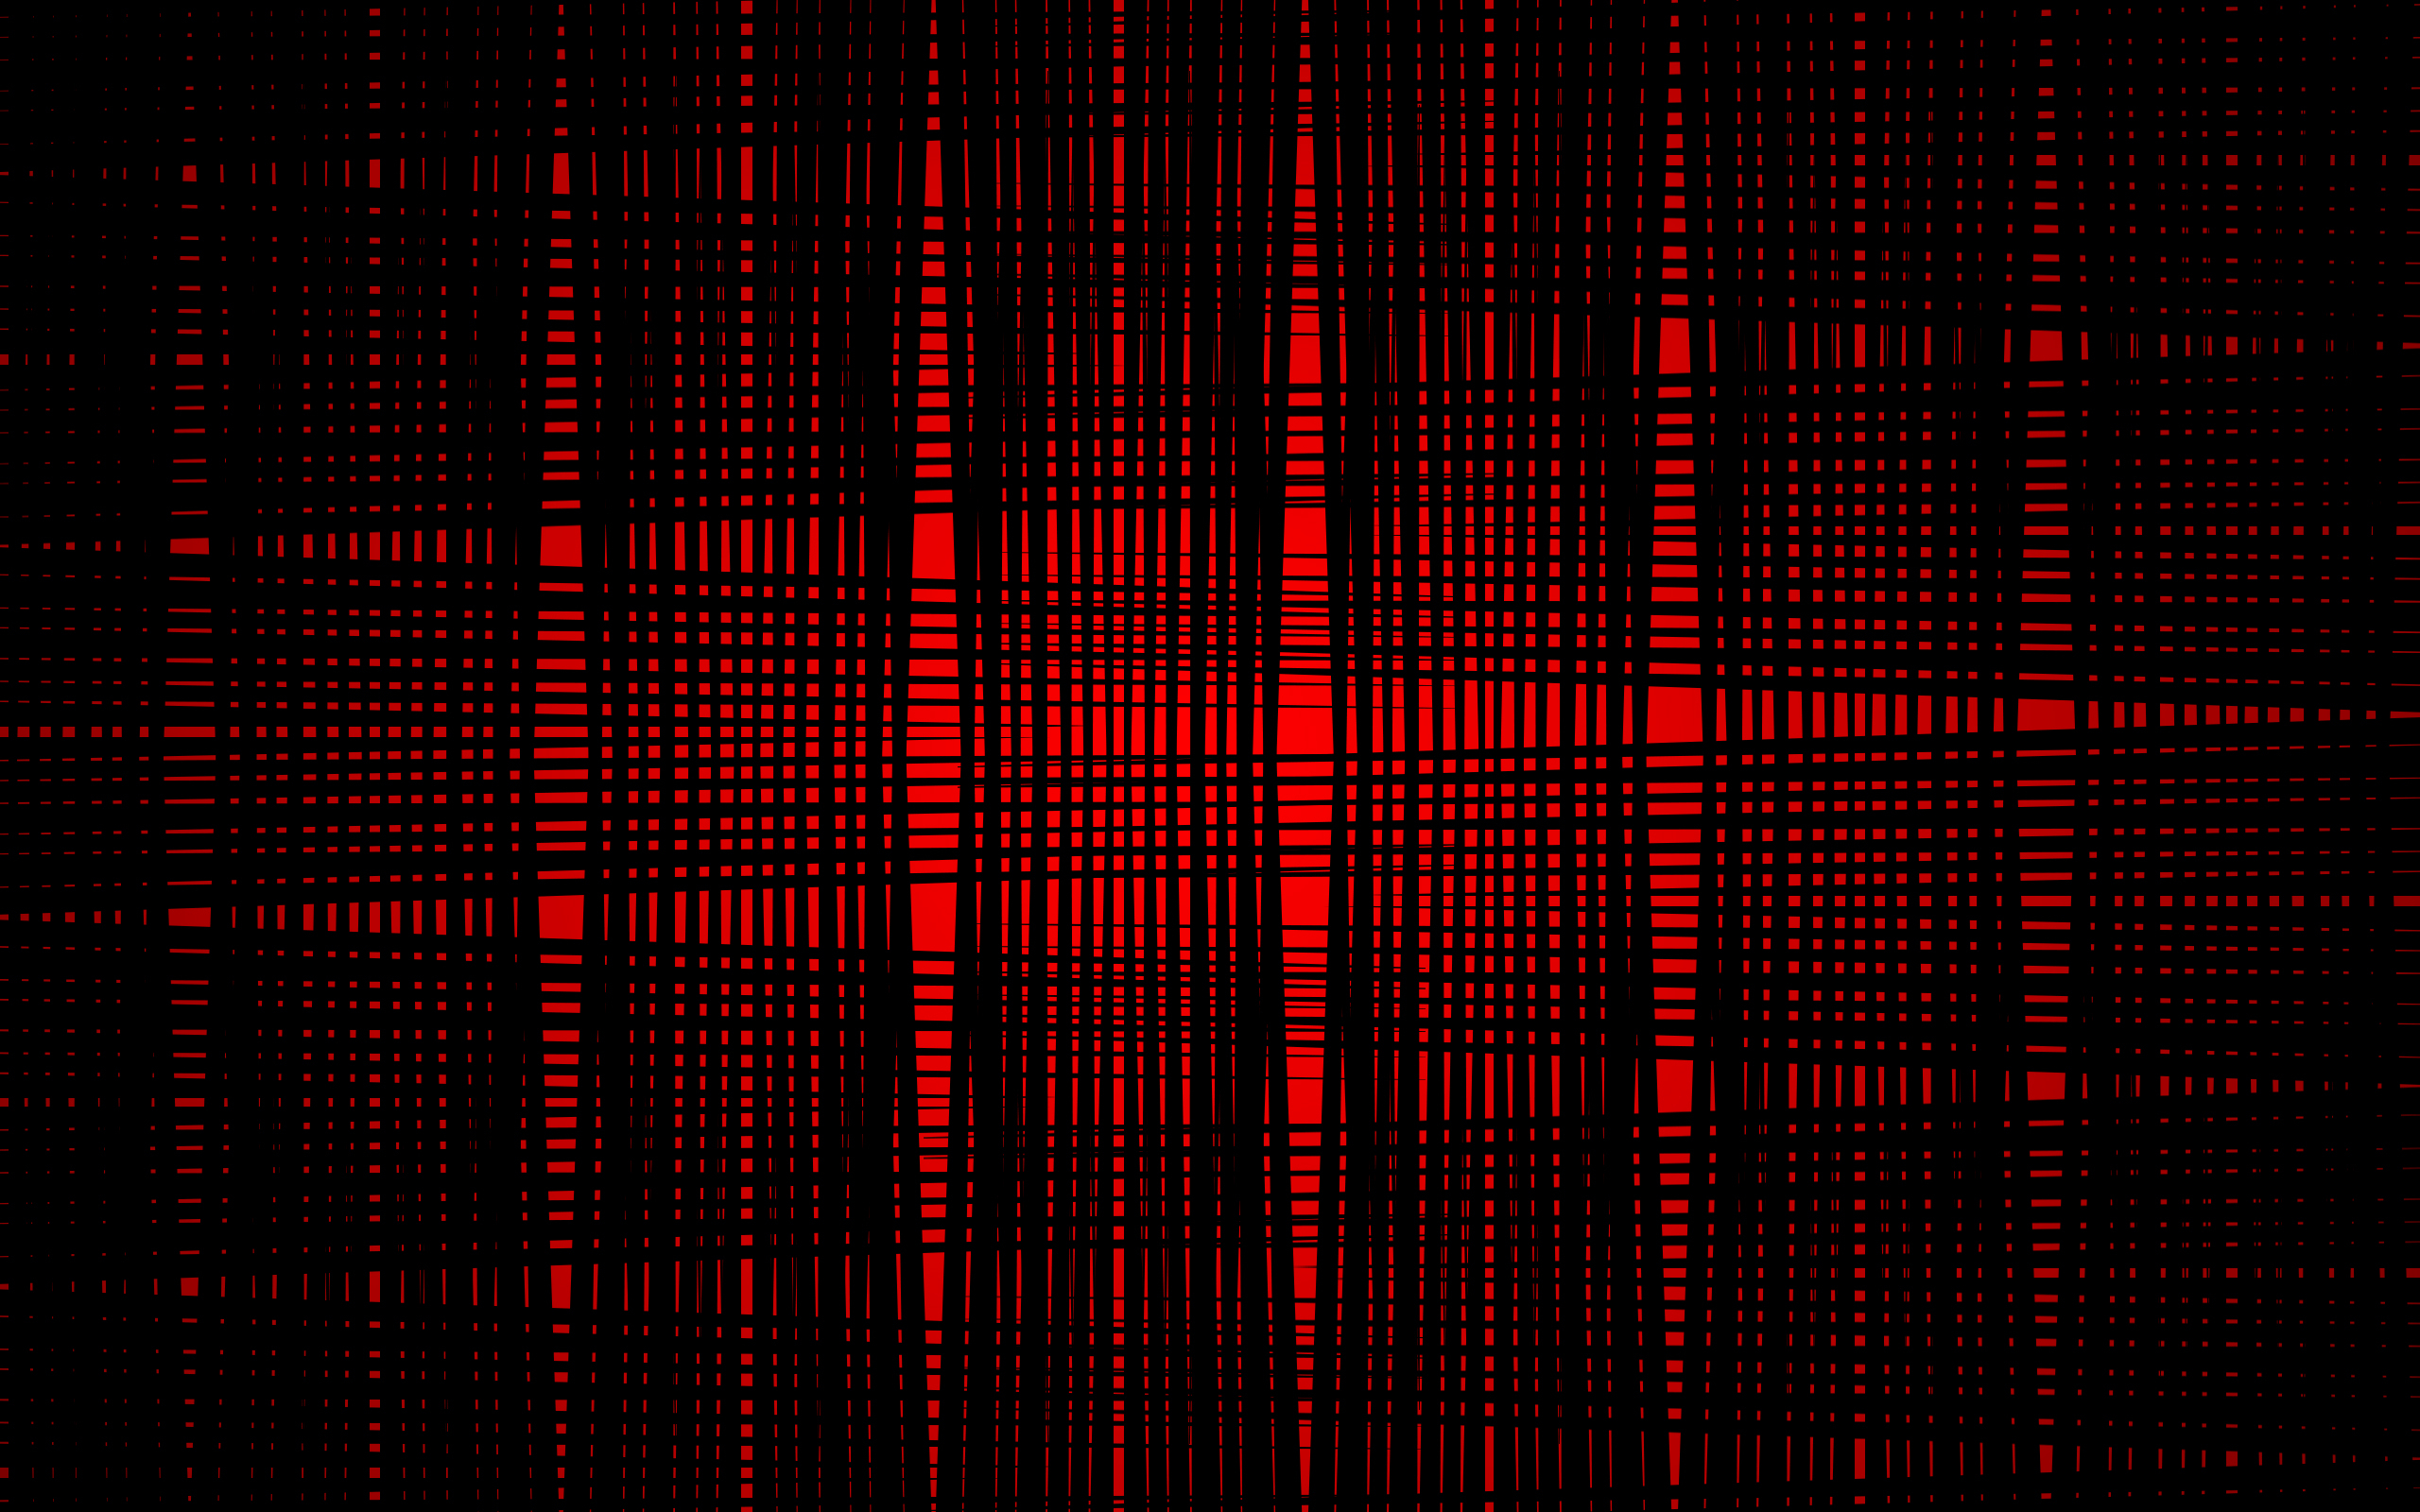 Download Wallpaper 1920x1080 Red, Black, Abstract Full HD 1080p HD .